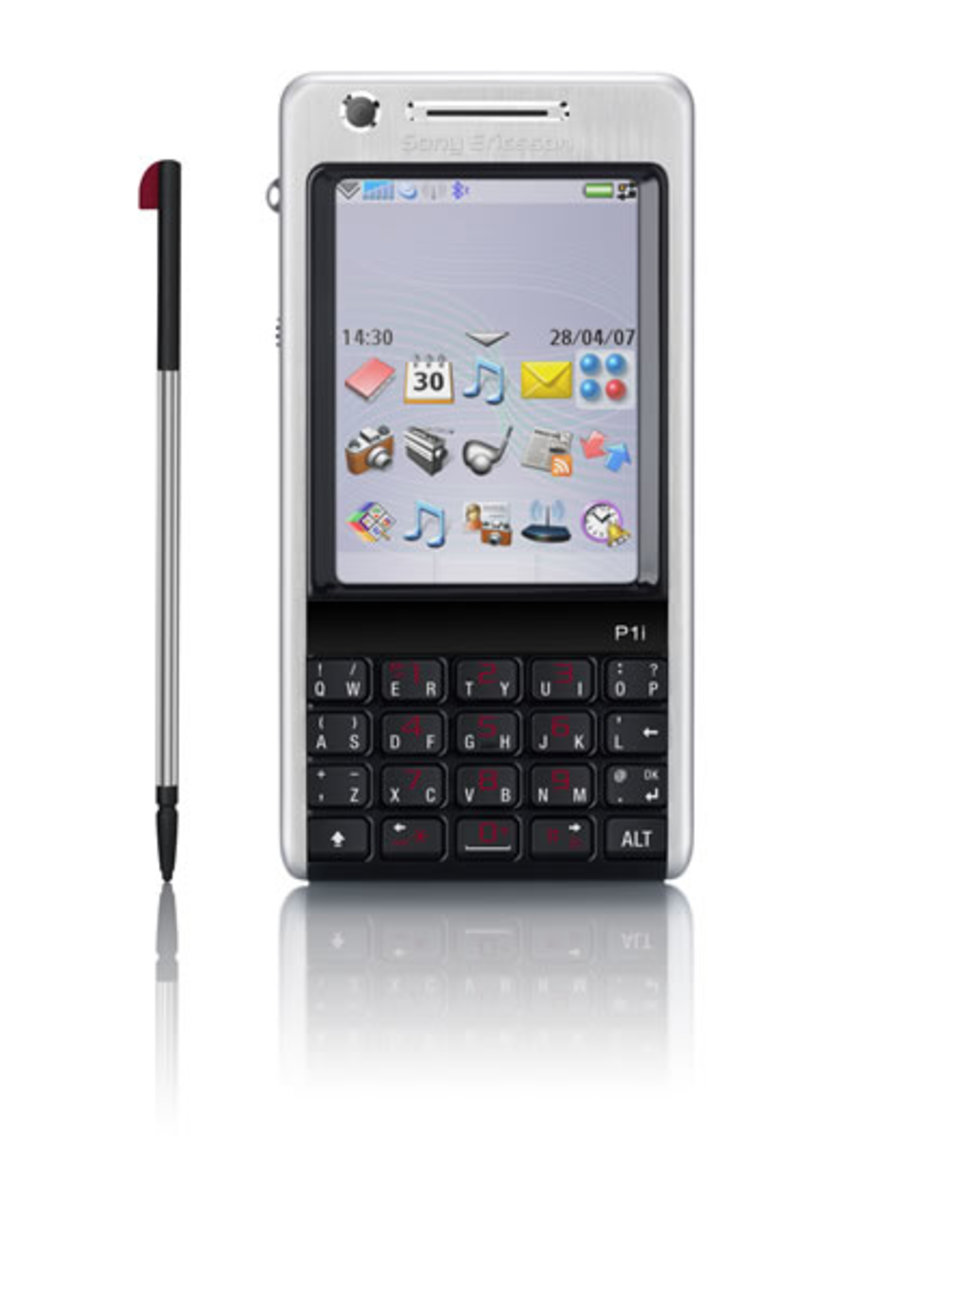 sony ericsson p1 first look image 1